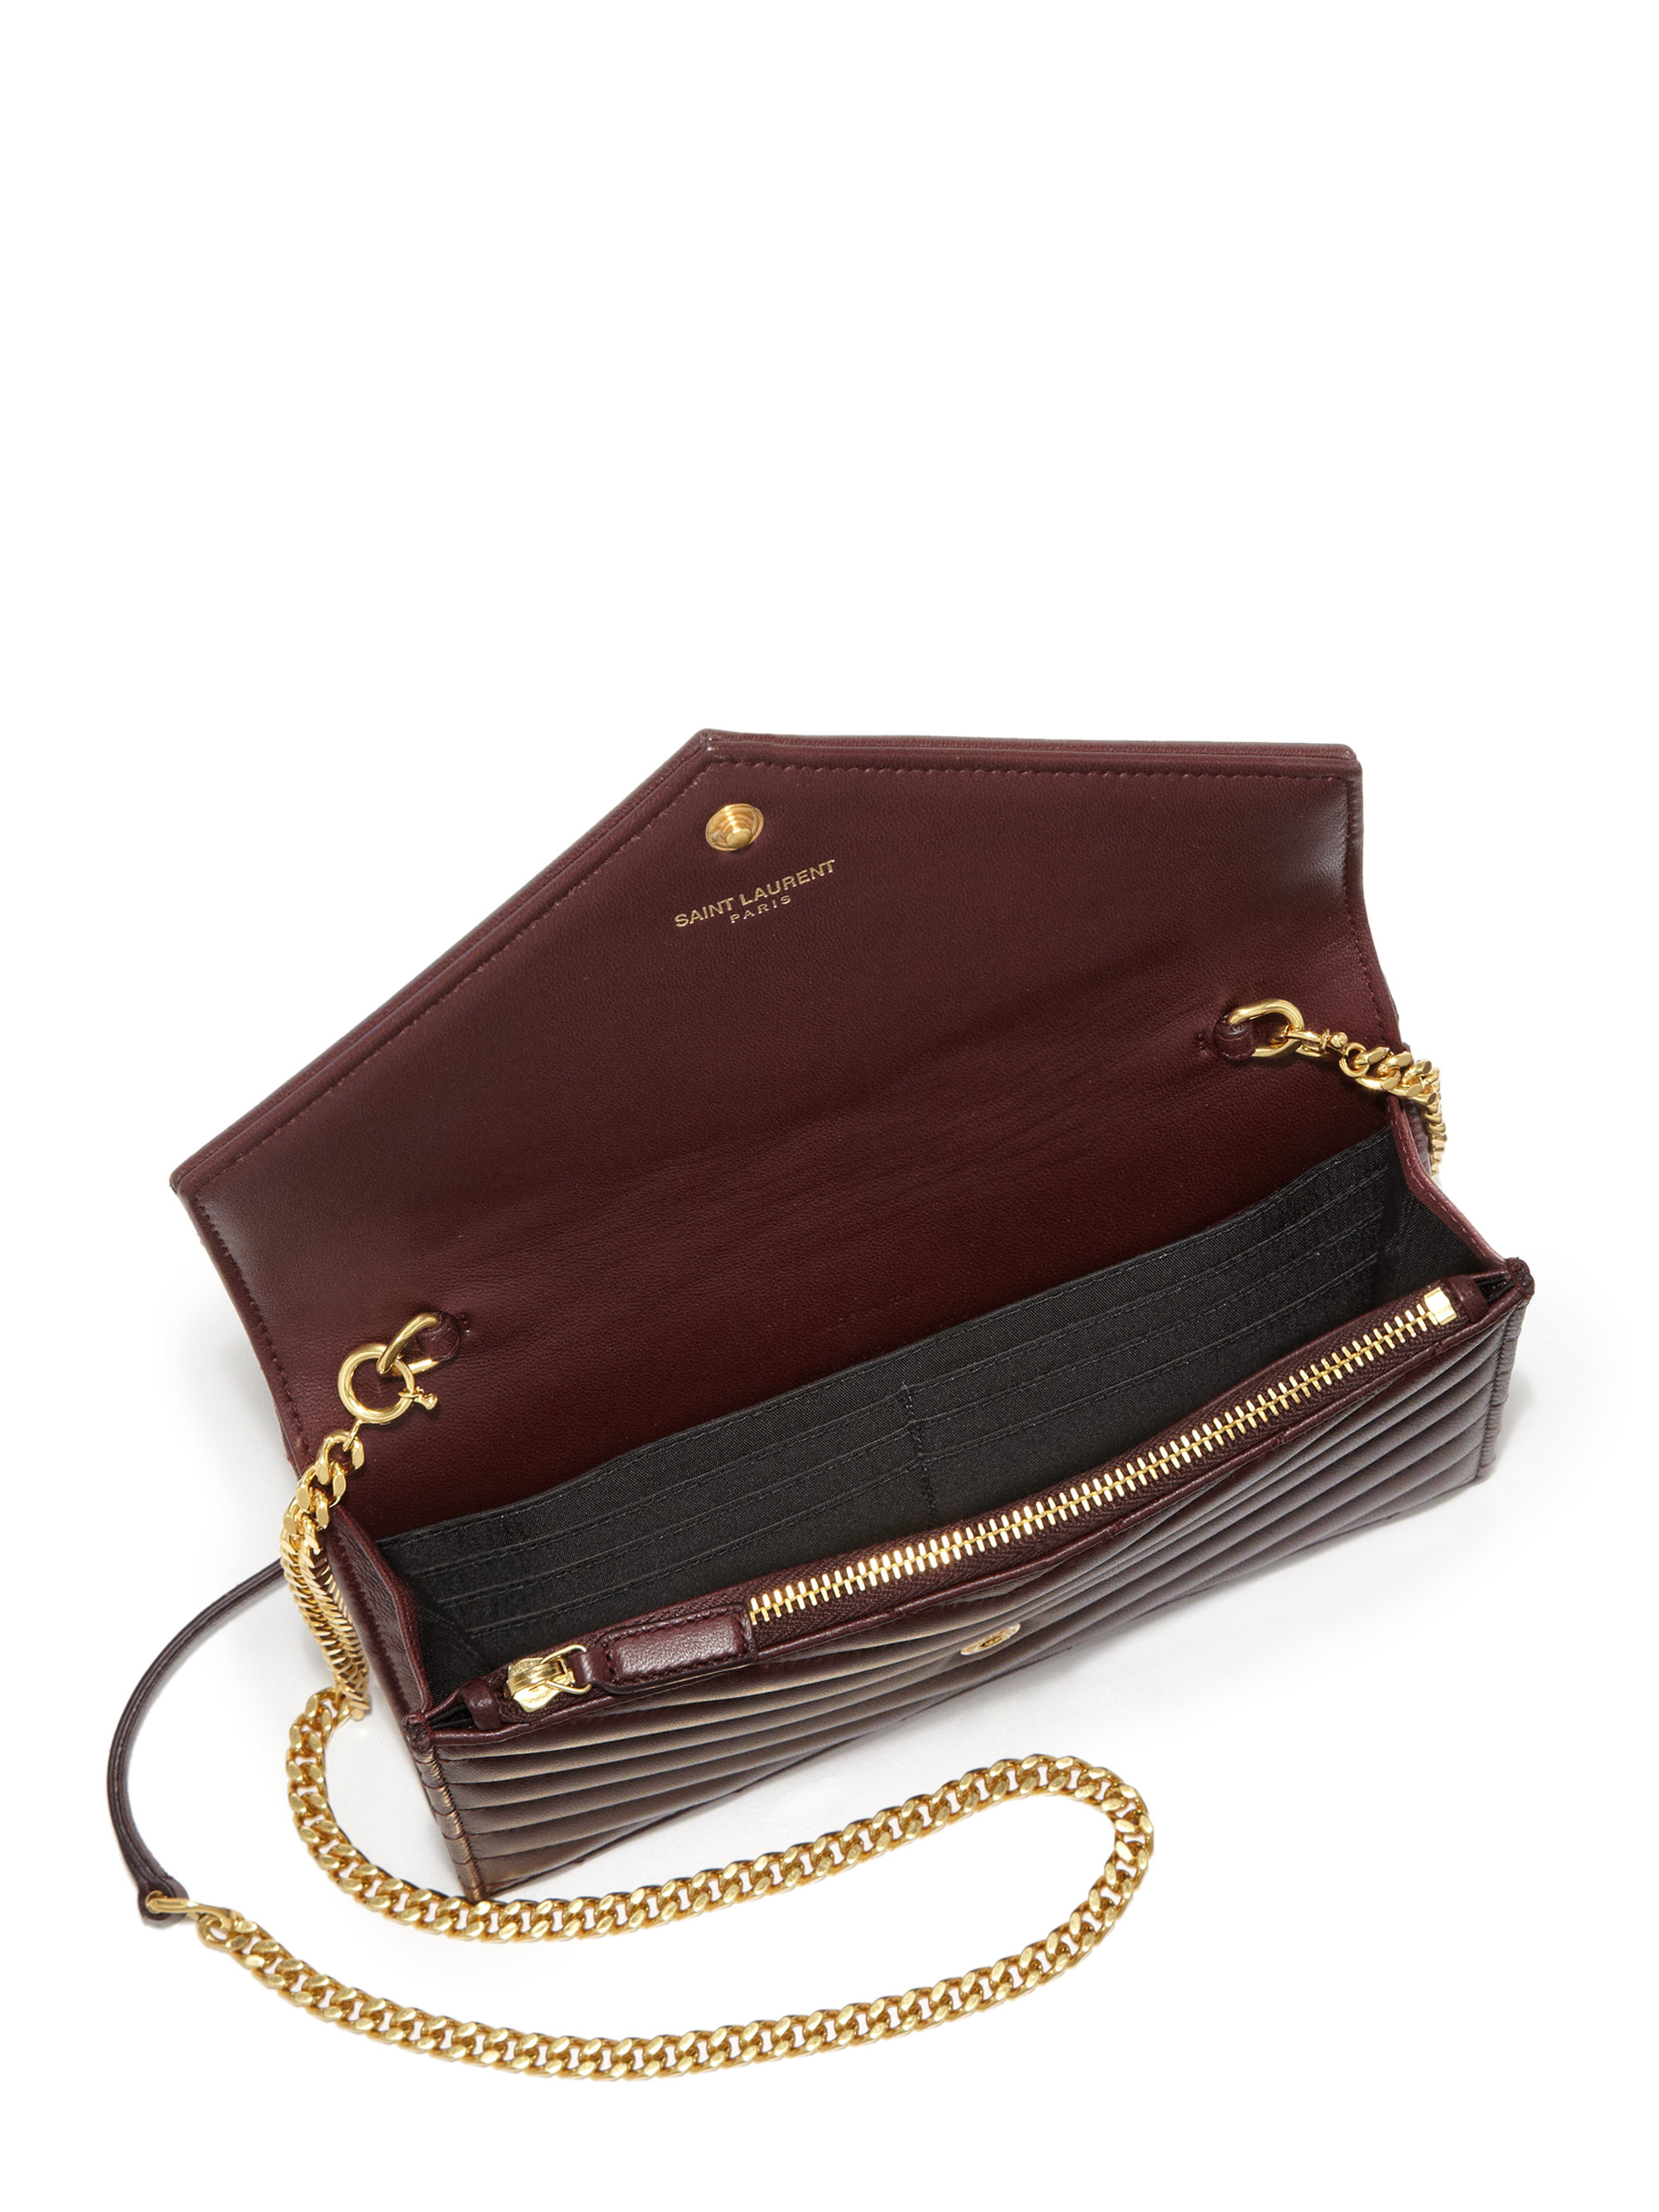 Lyst - Saint Laurent Monogramme Matelasse Leather Chain Wallet in Purple 069388712dfe9